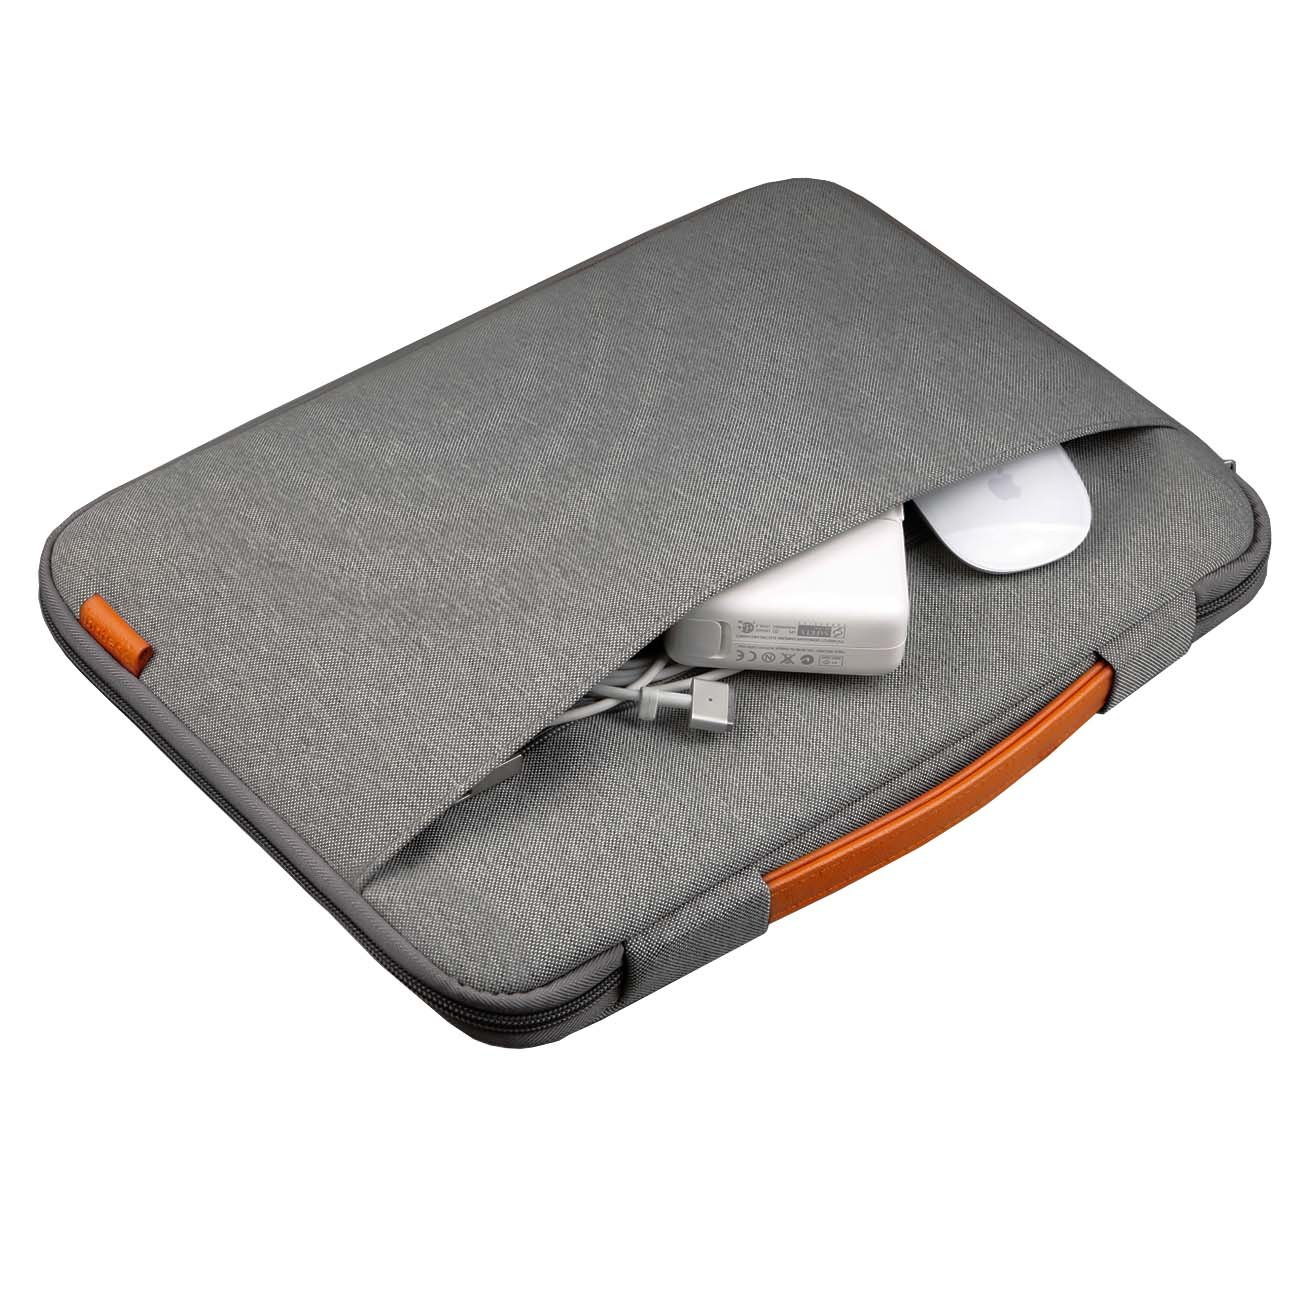 Inateck 15 154 Inch Laptop Sleeve MacBook Pro Retina Surface Book 2 Briefcase Bag For Ultrabook Netbook